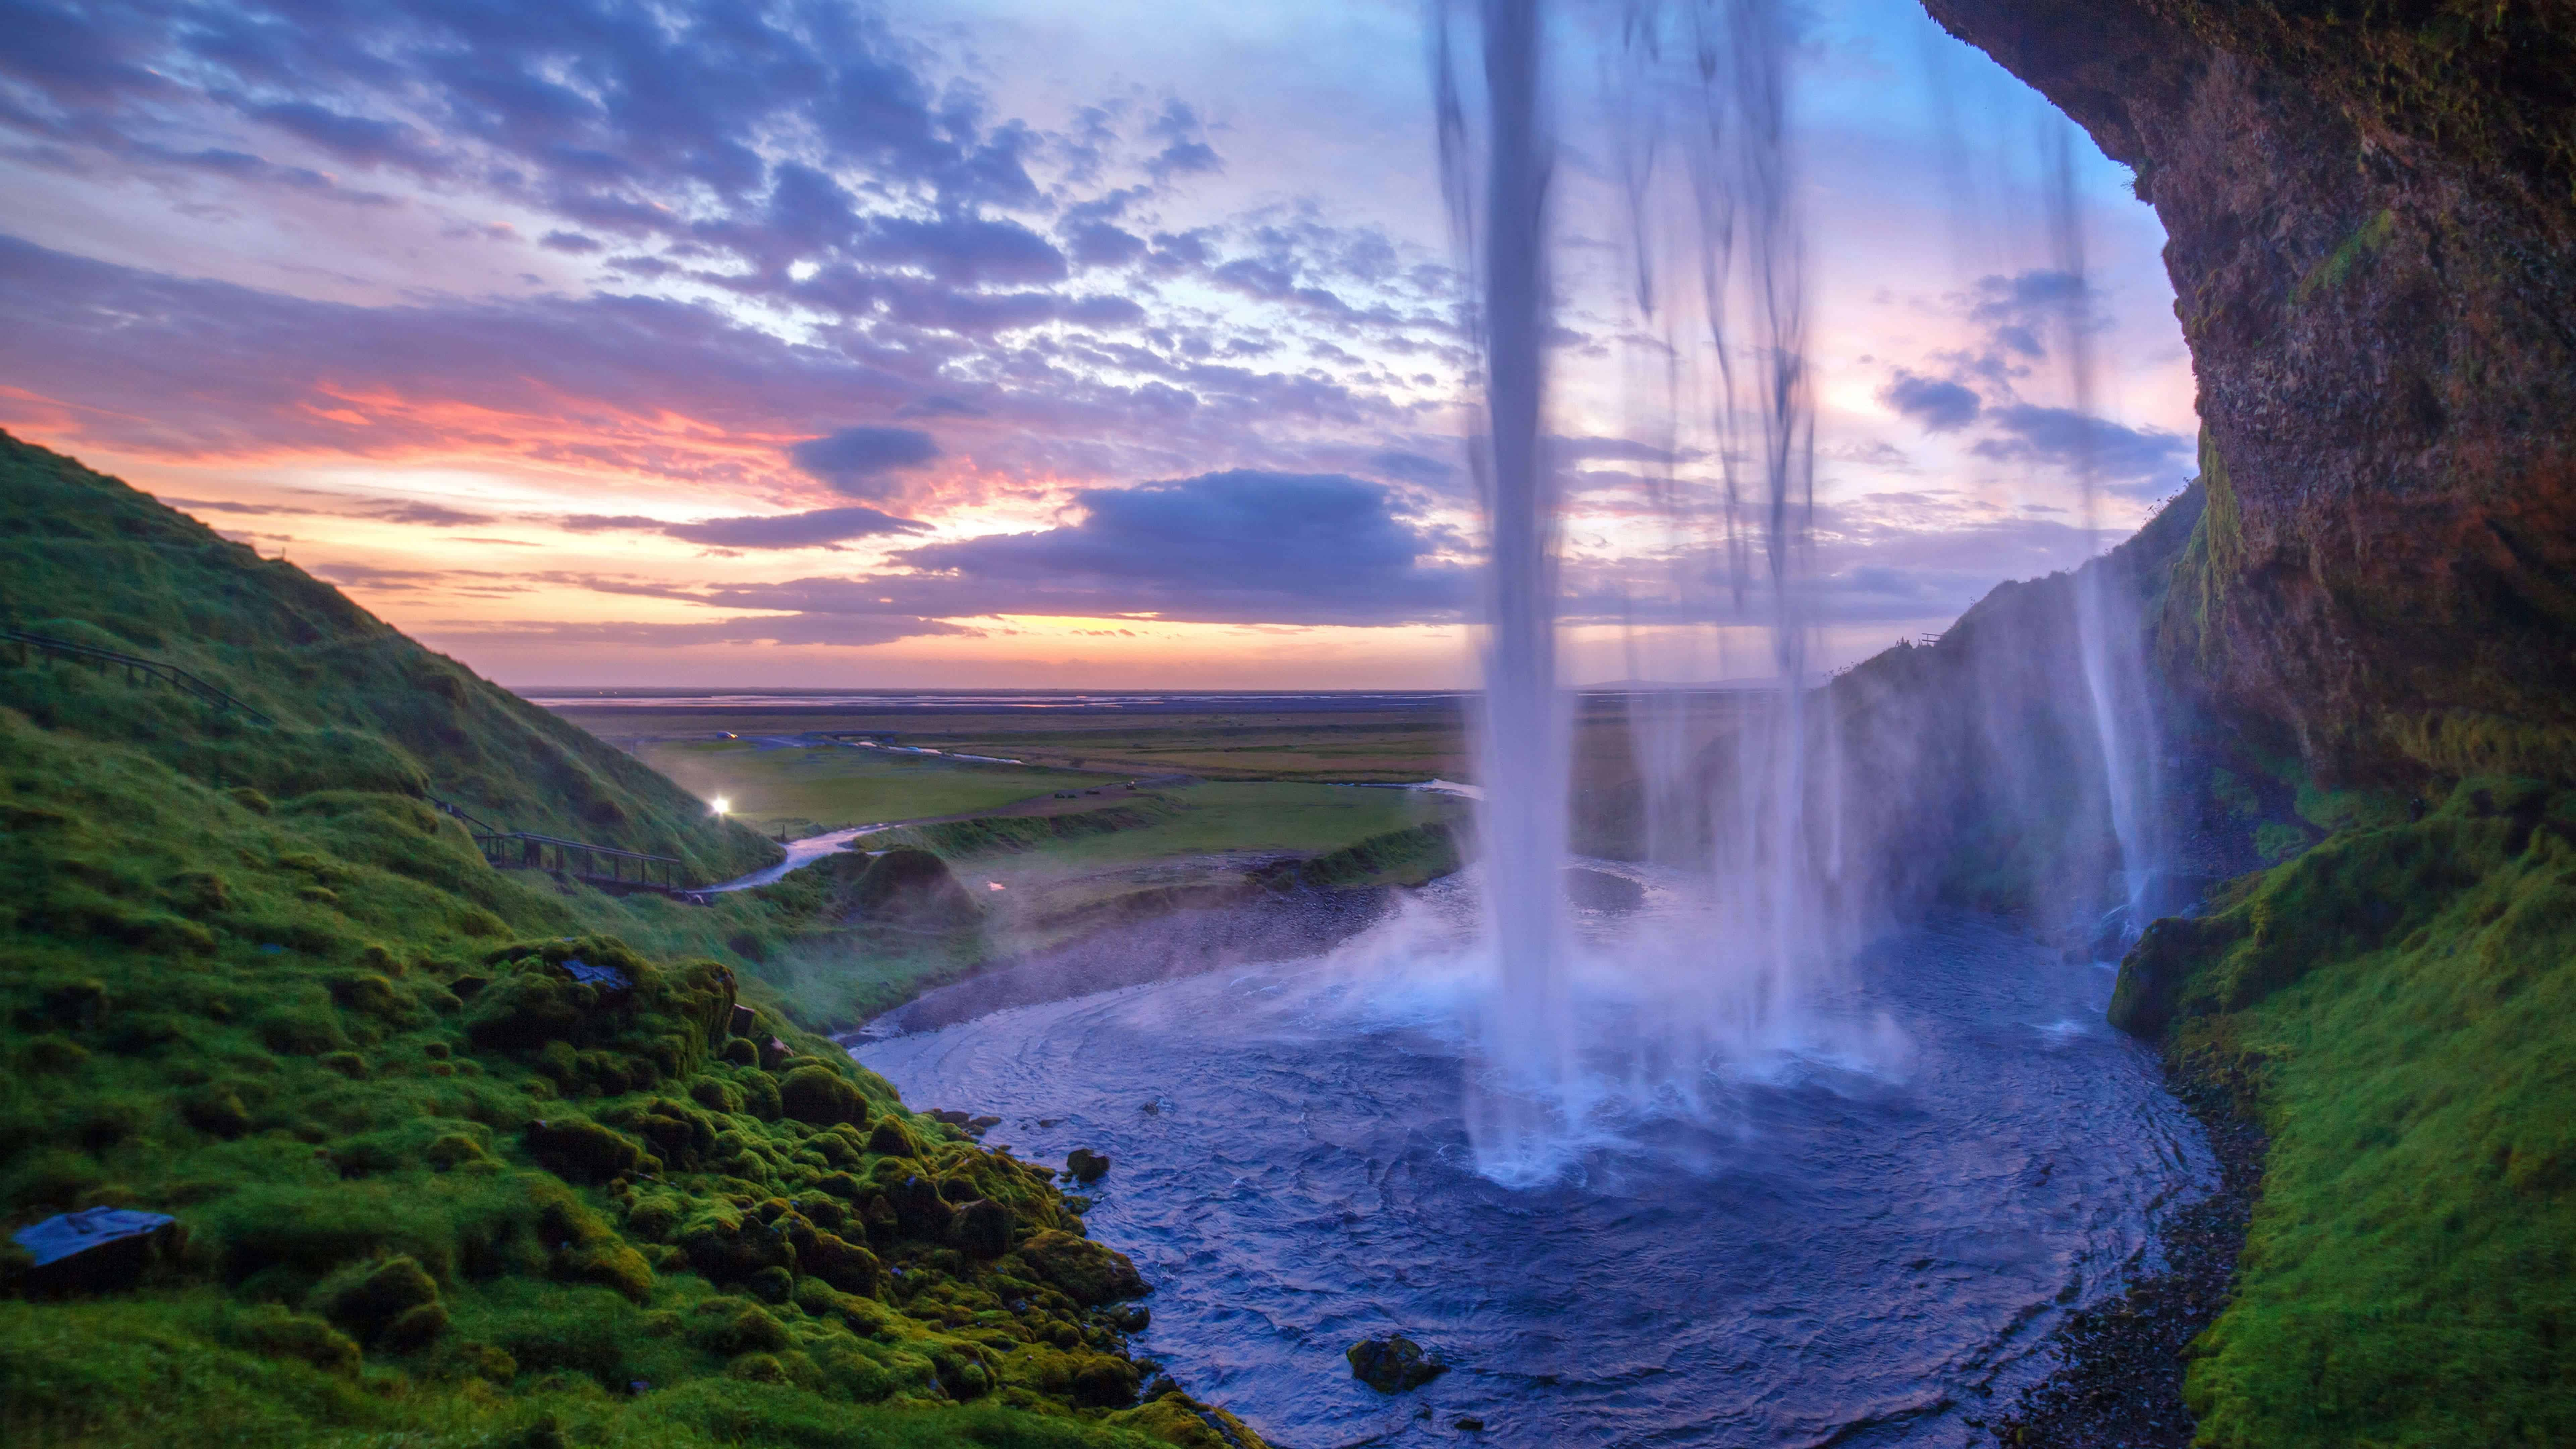 seljalandsfoss-waterfall-iceland-uhd-8k-wallpaper